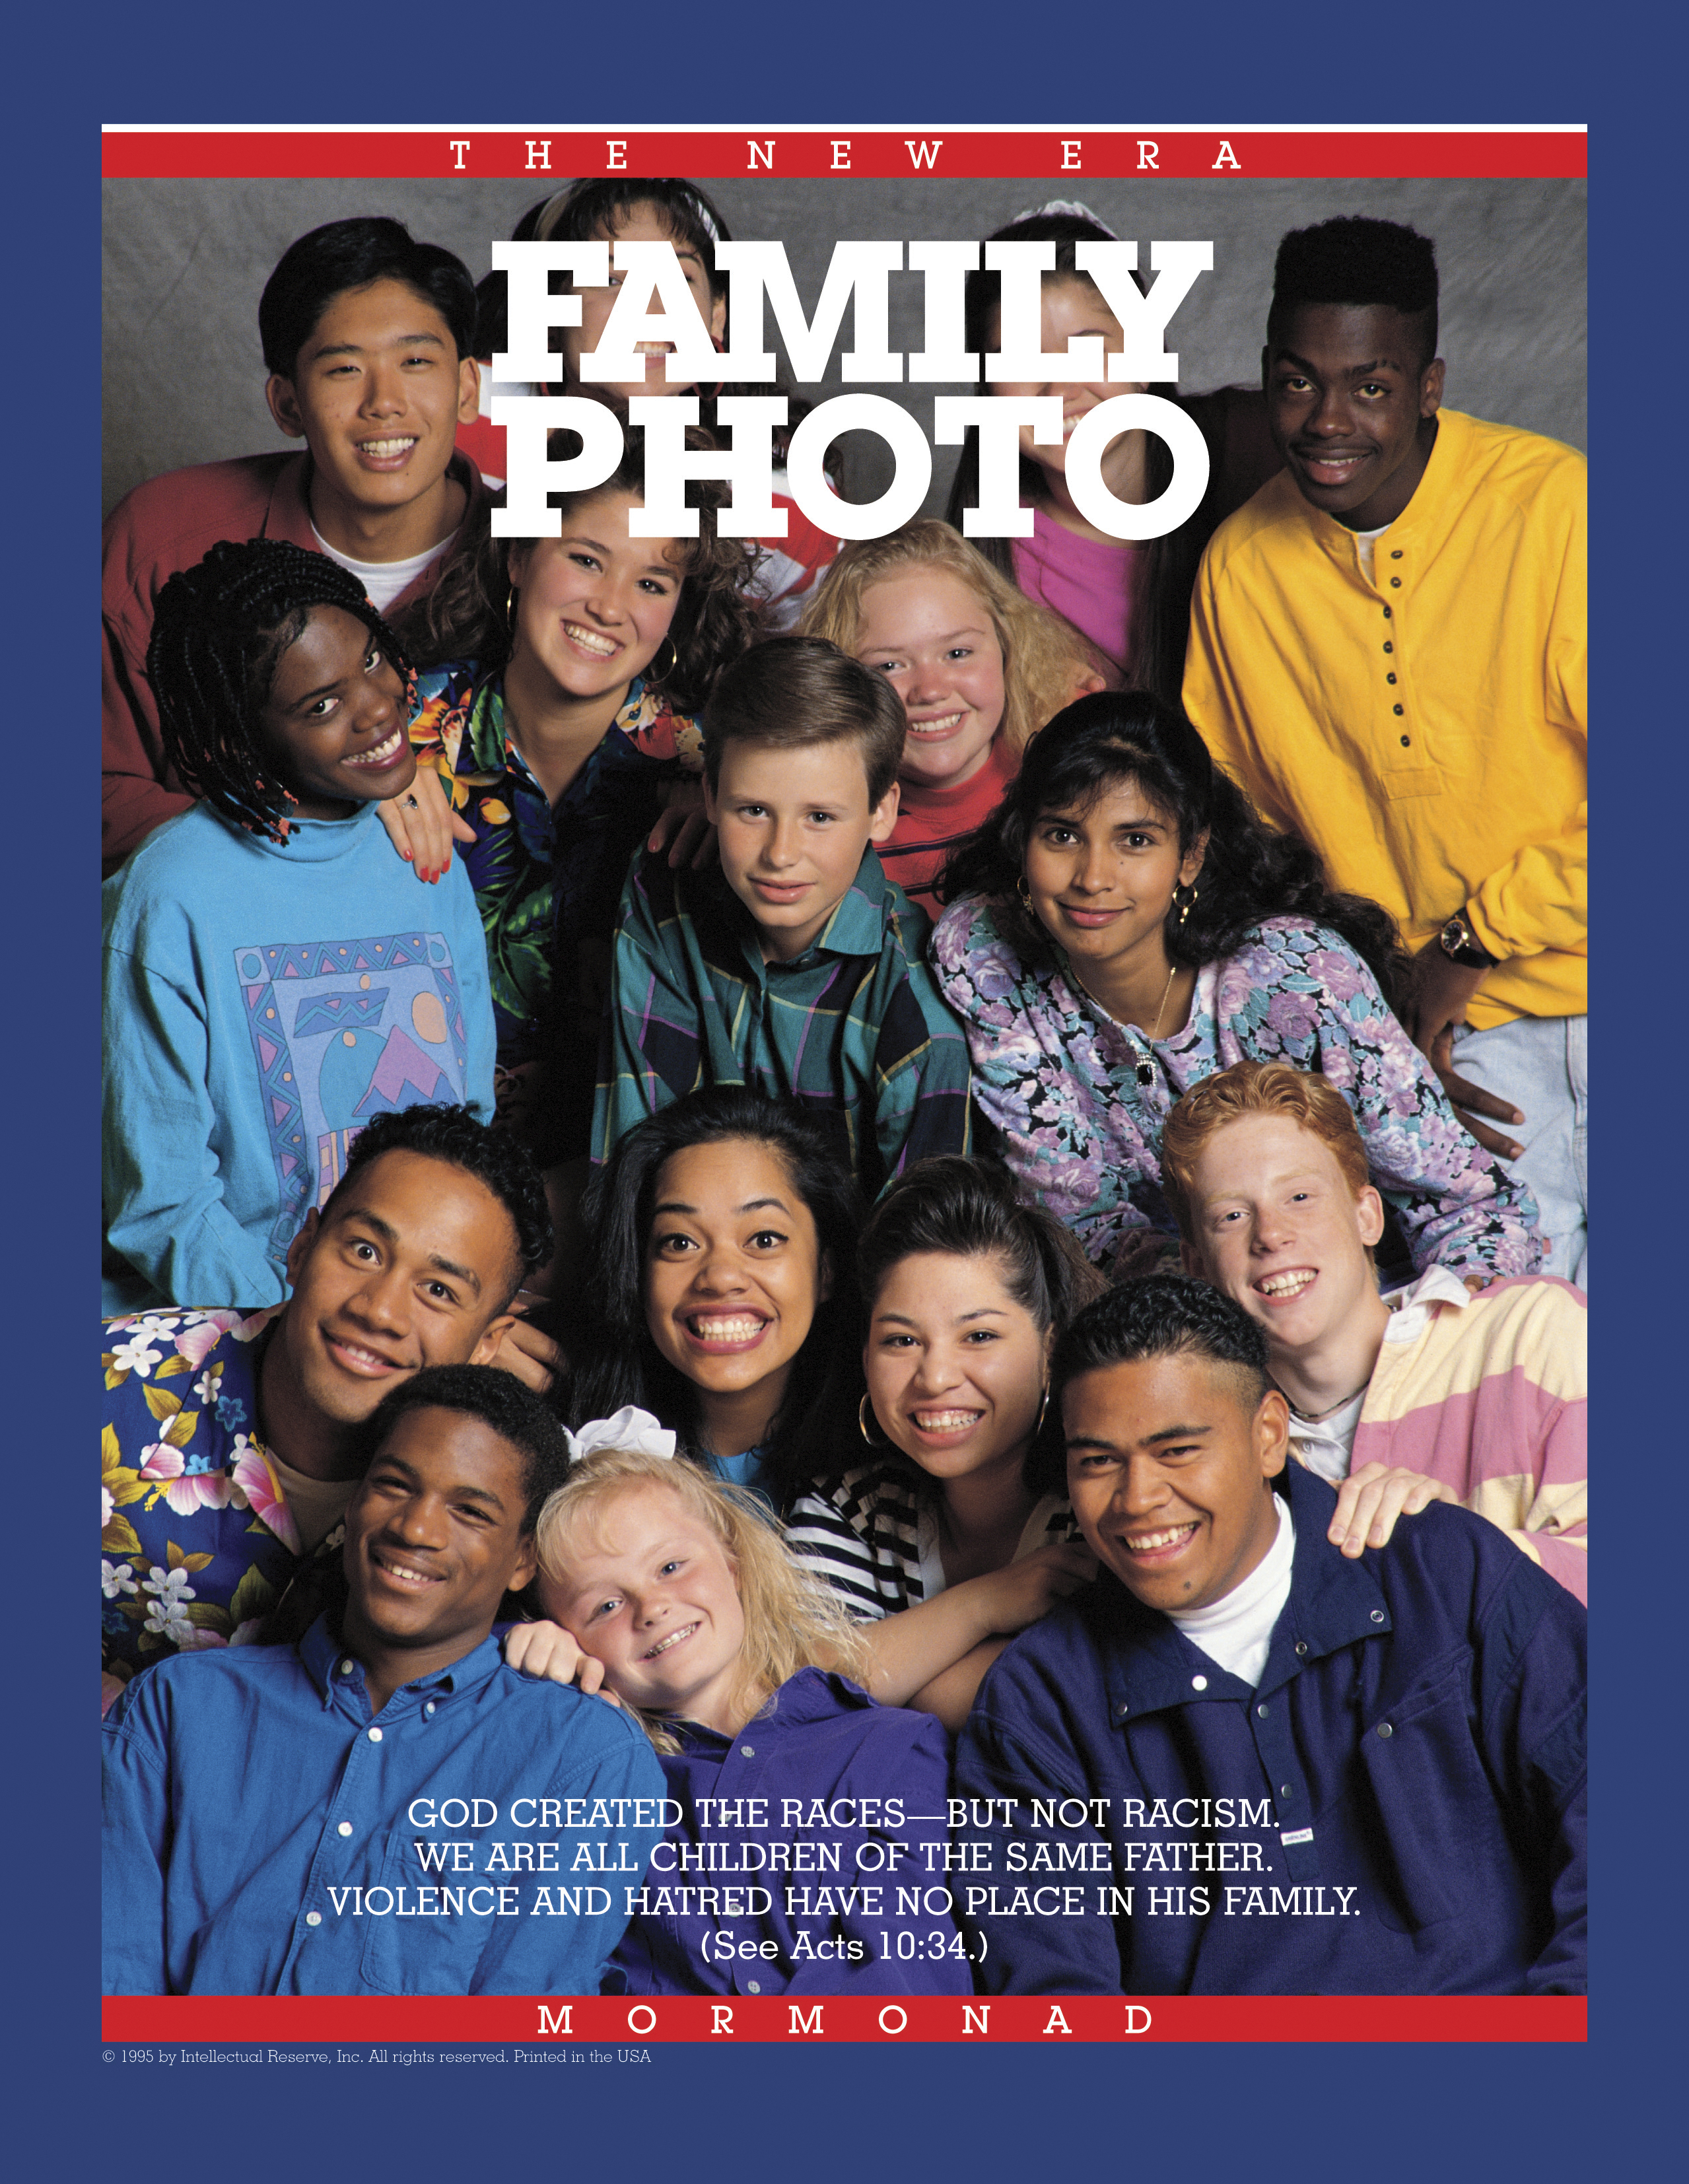 Family Photo. God created the races—but not racism. We are all children of the same Father. Violence and hatred have no place in his family. (See Acts 10:34.) July 1992 © undefined ipCode 1.